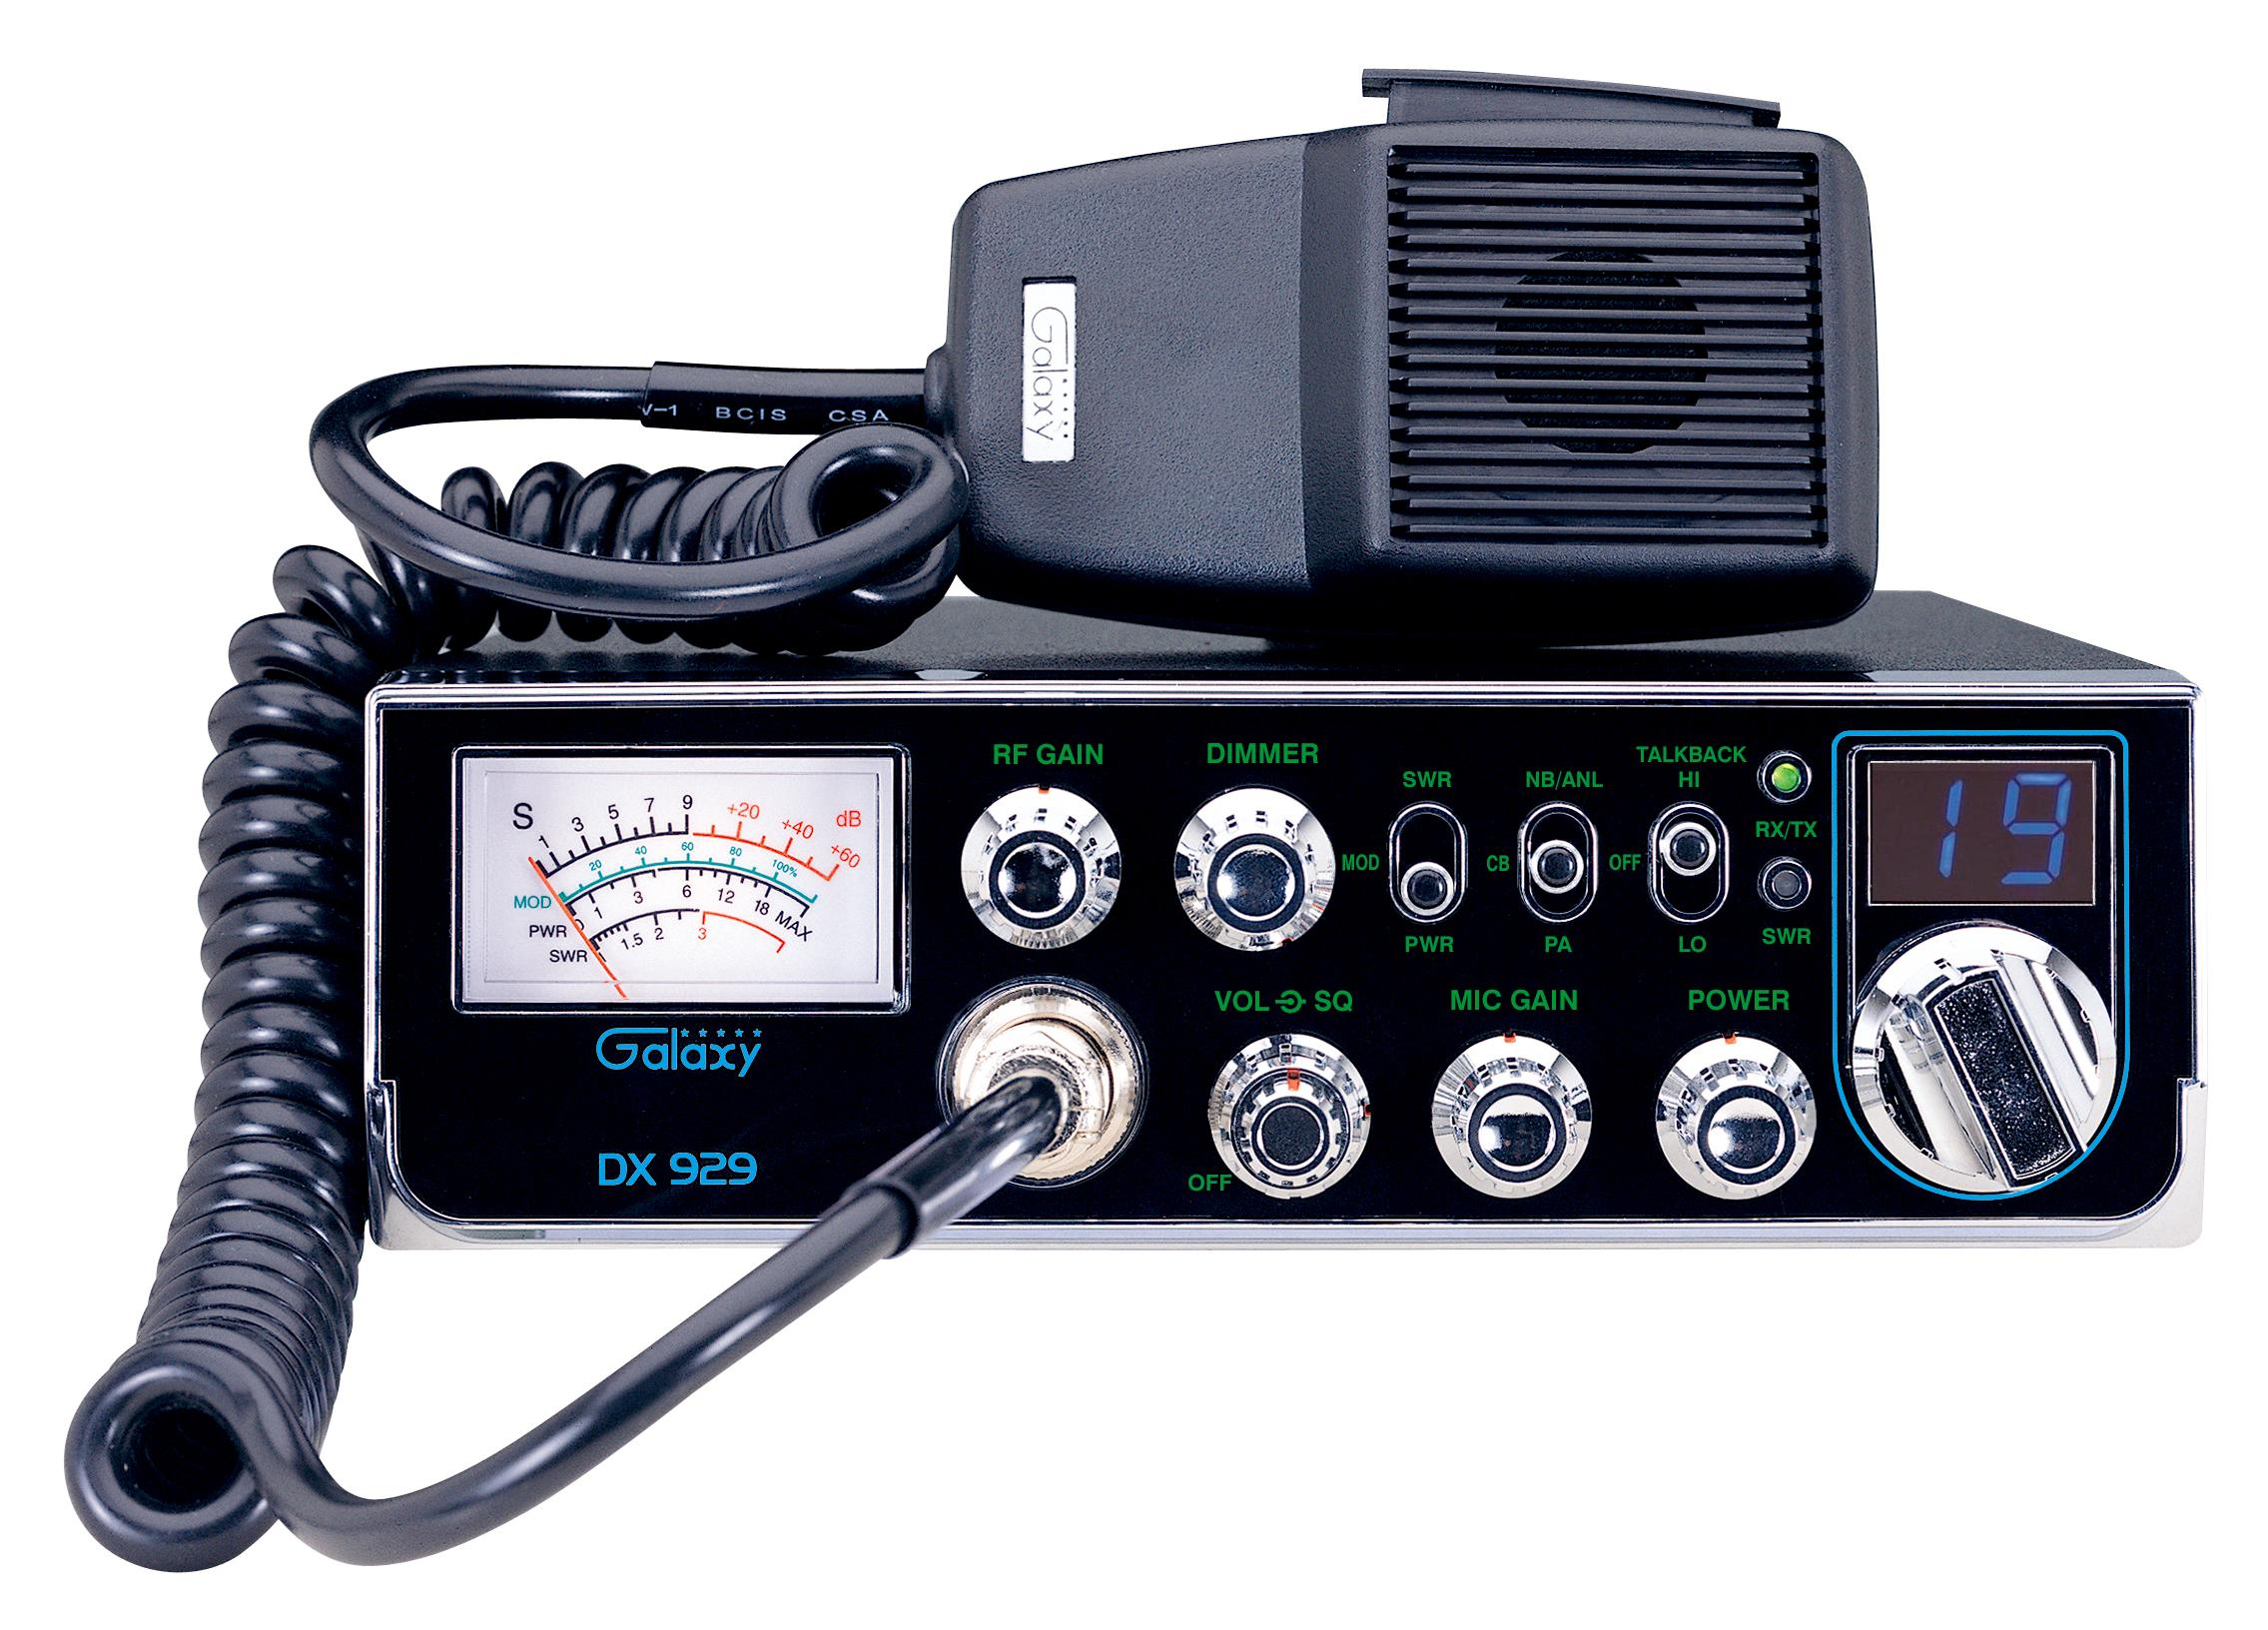 Galaxy CB Radio Model DX929 For Sale